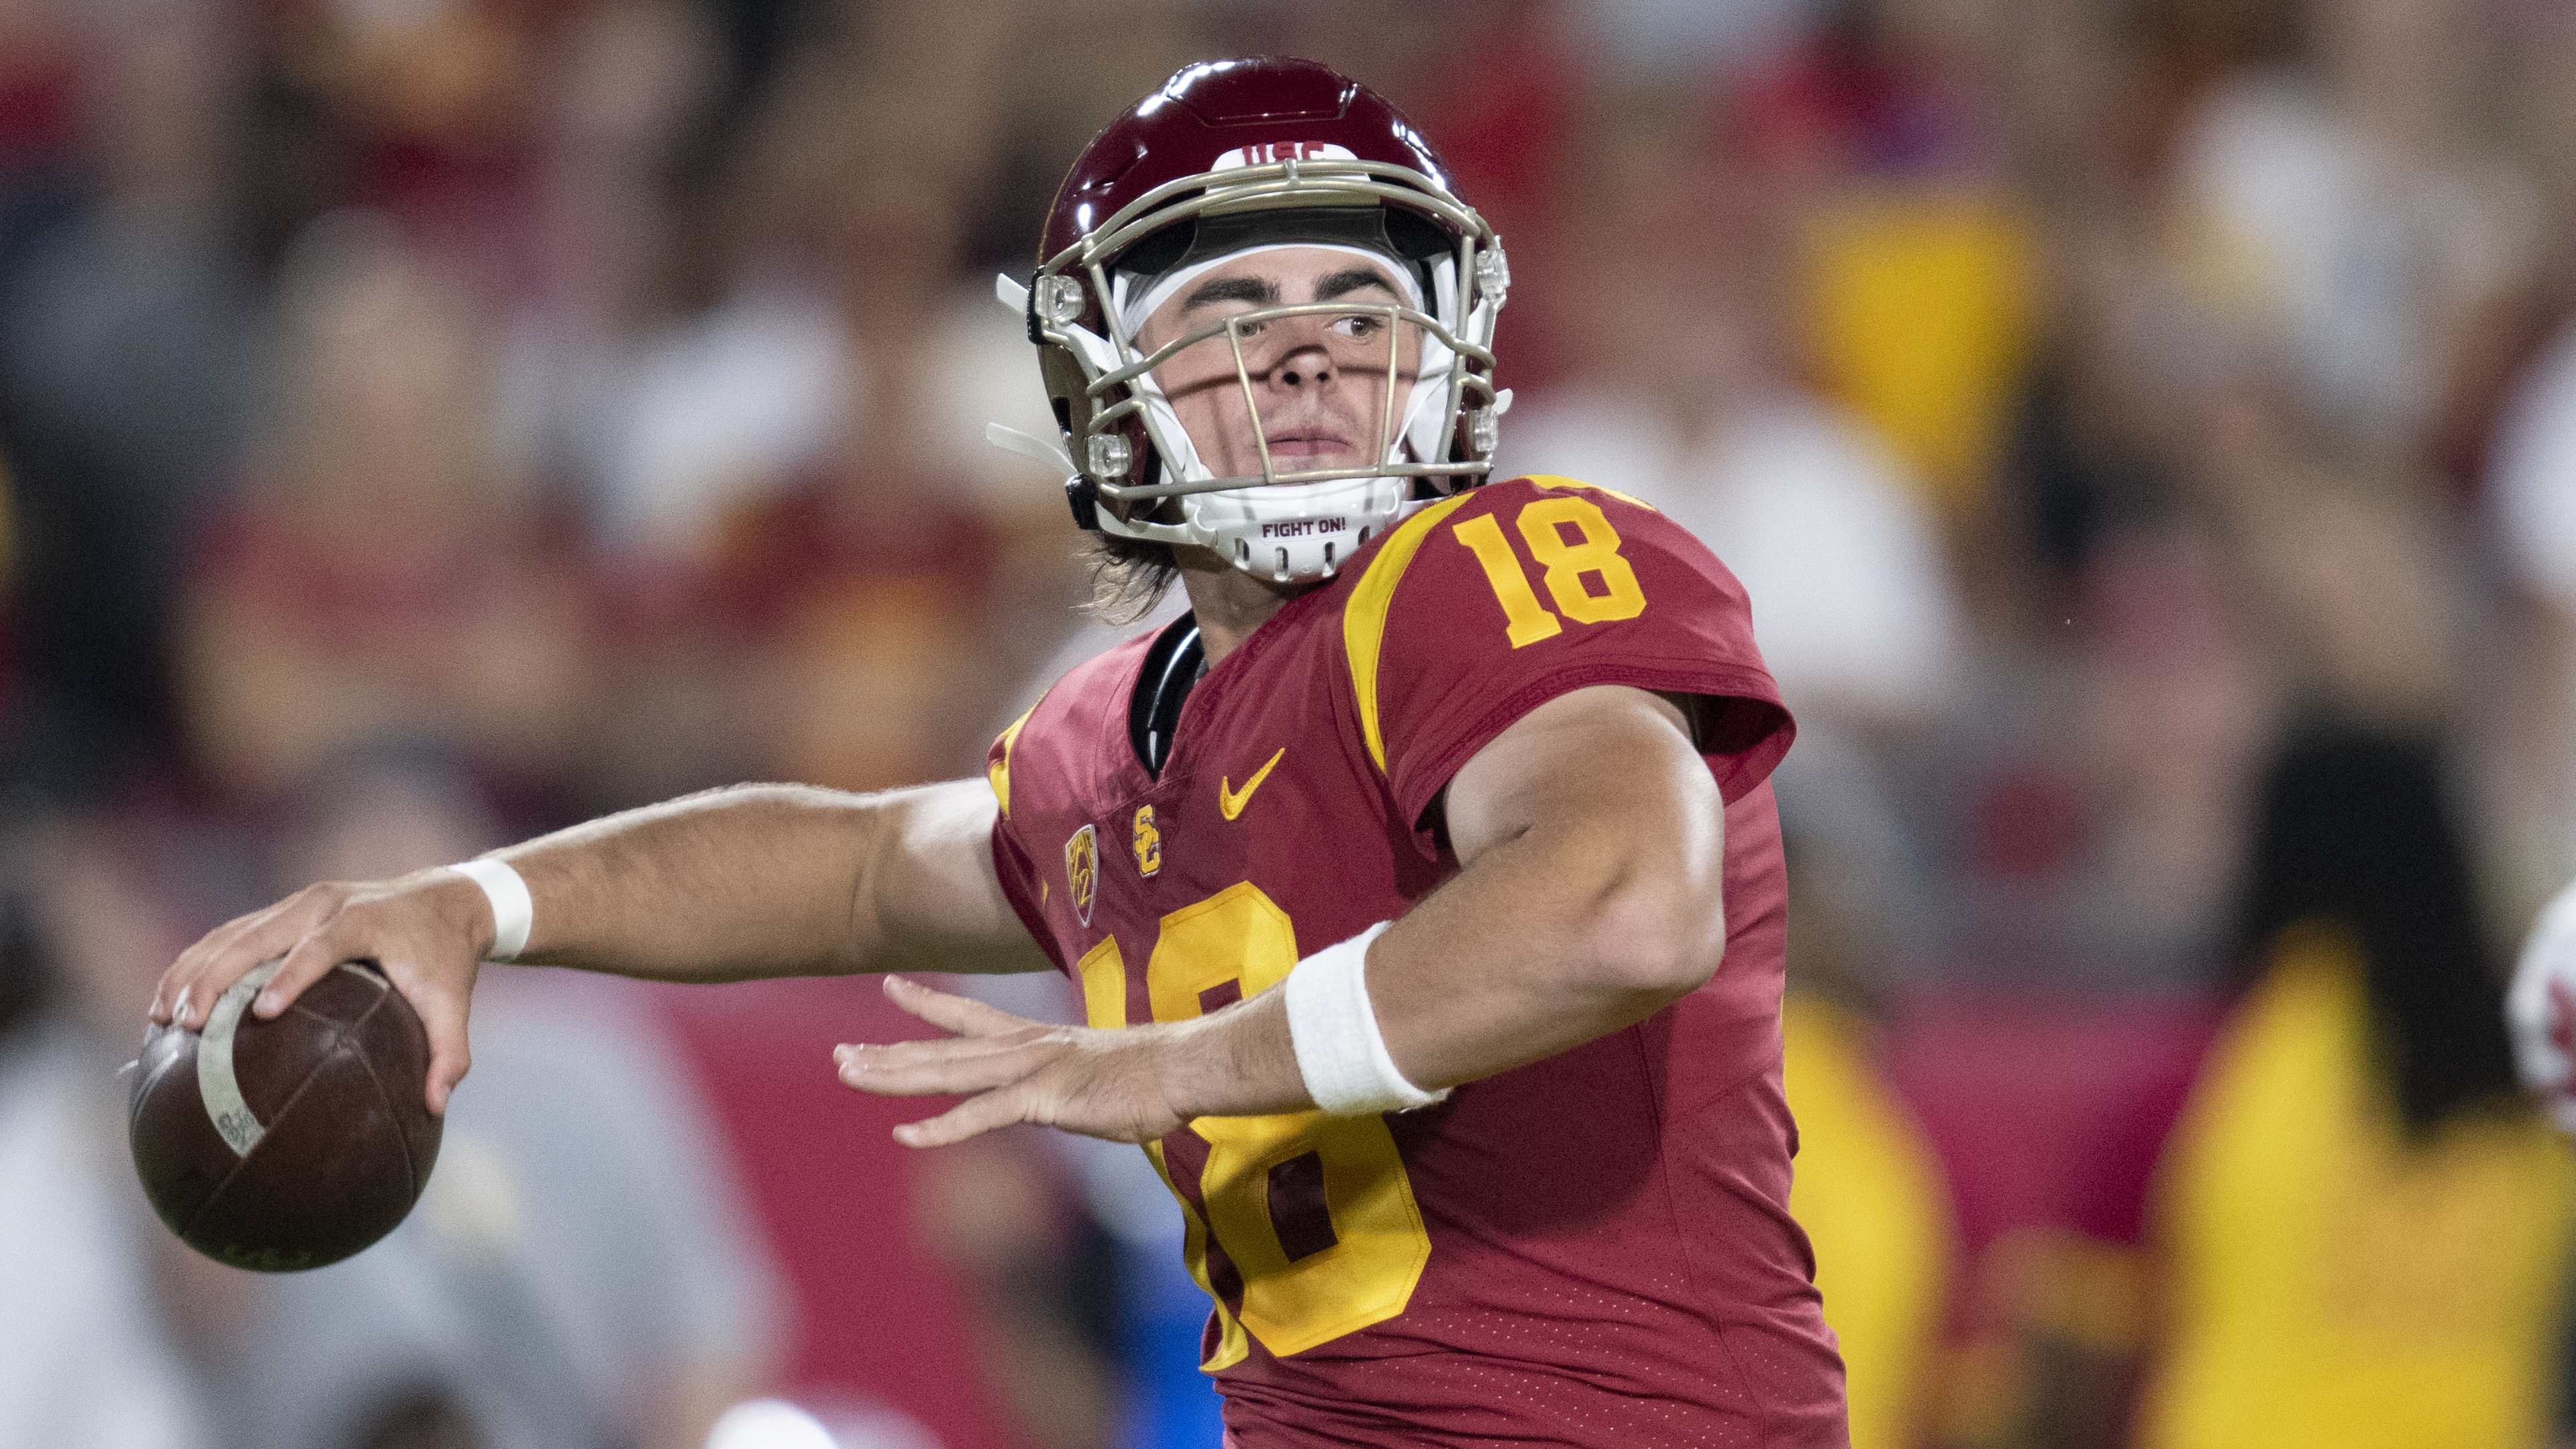 USC QB Daniels enters transfer portal; lost job to Slovis